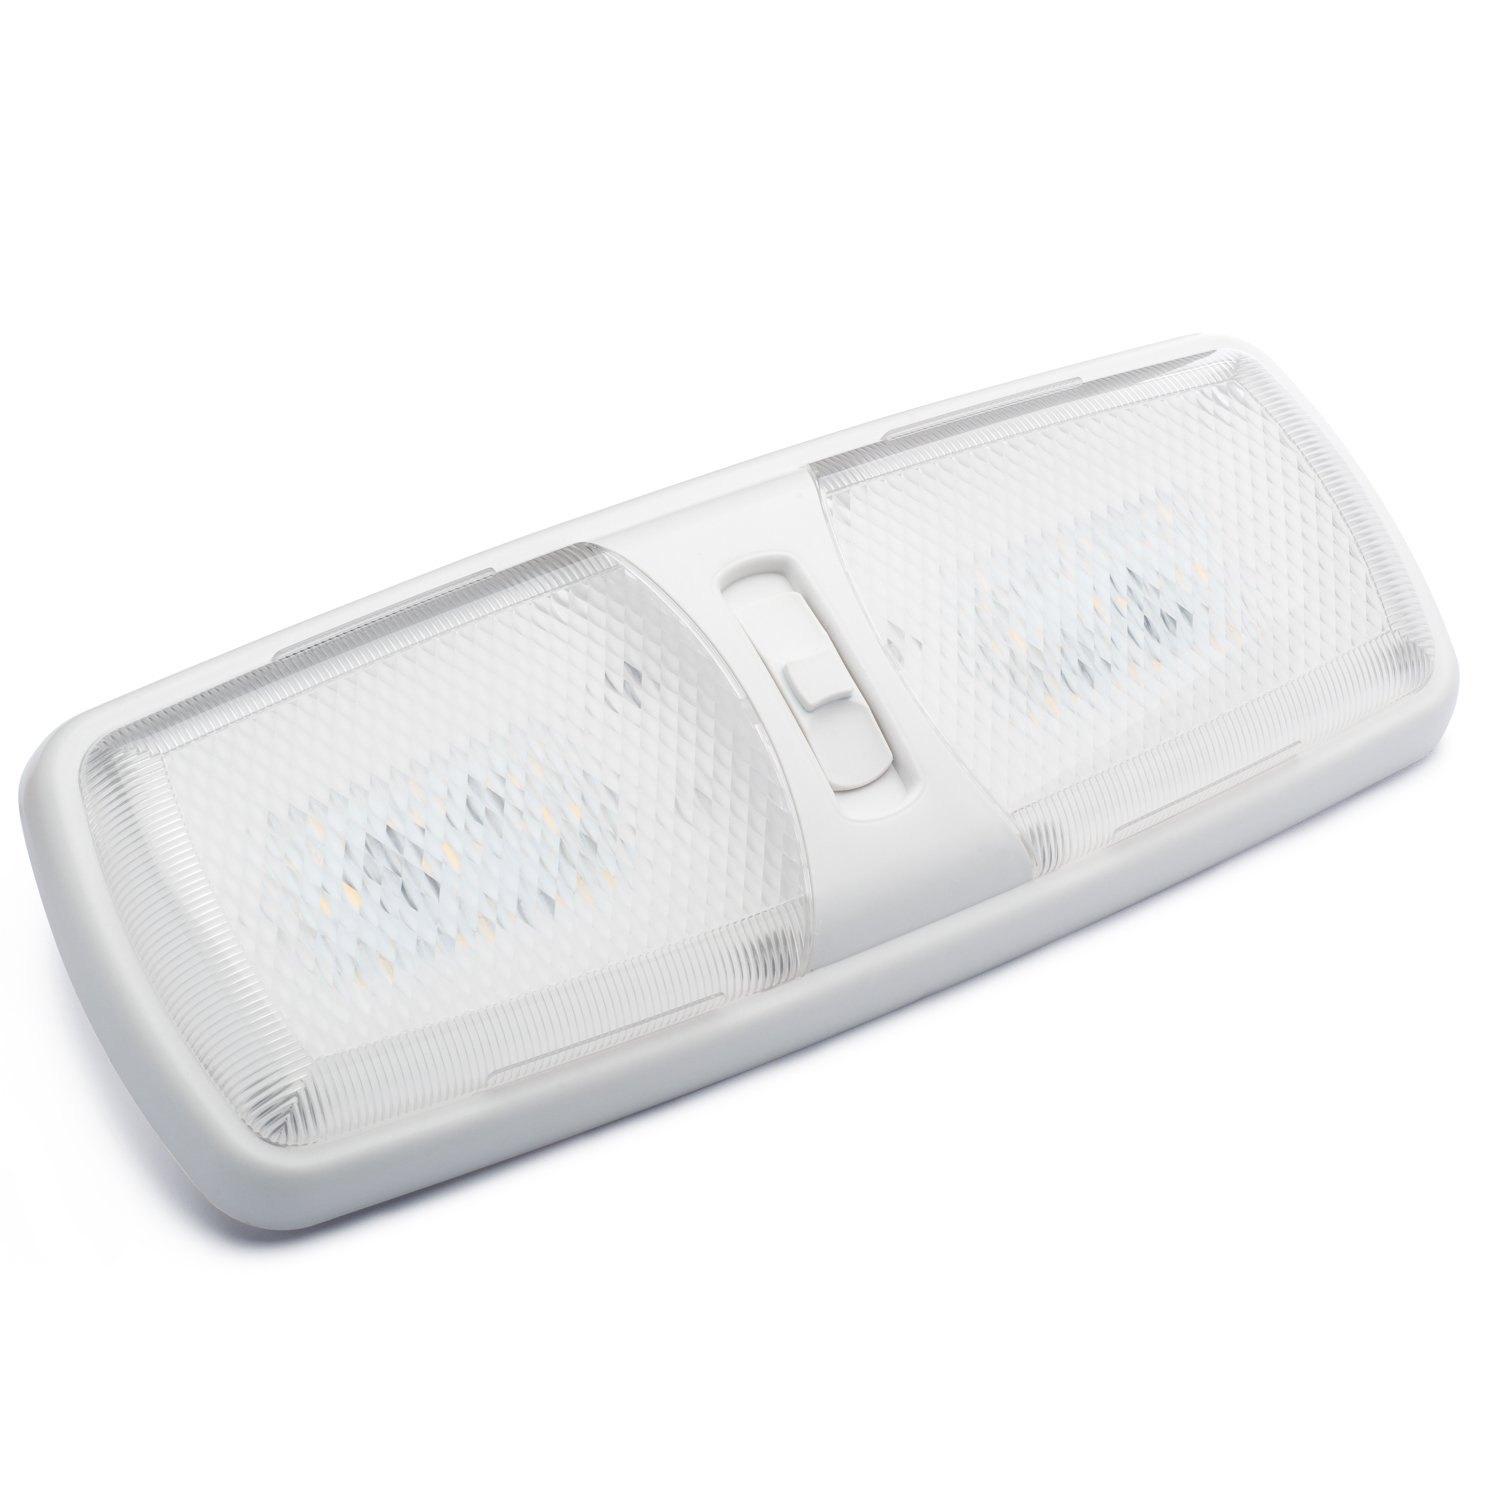 Lumitronics Designer Double LED Dome Light with 3-Way Switch and Removable Lenses. Interior Replacement 12V Lighting for RVs, Motorhomes, Campers, 5th Wheels, Trailers - Mounting Hardware Included